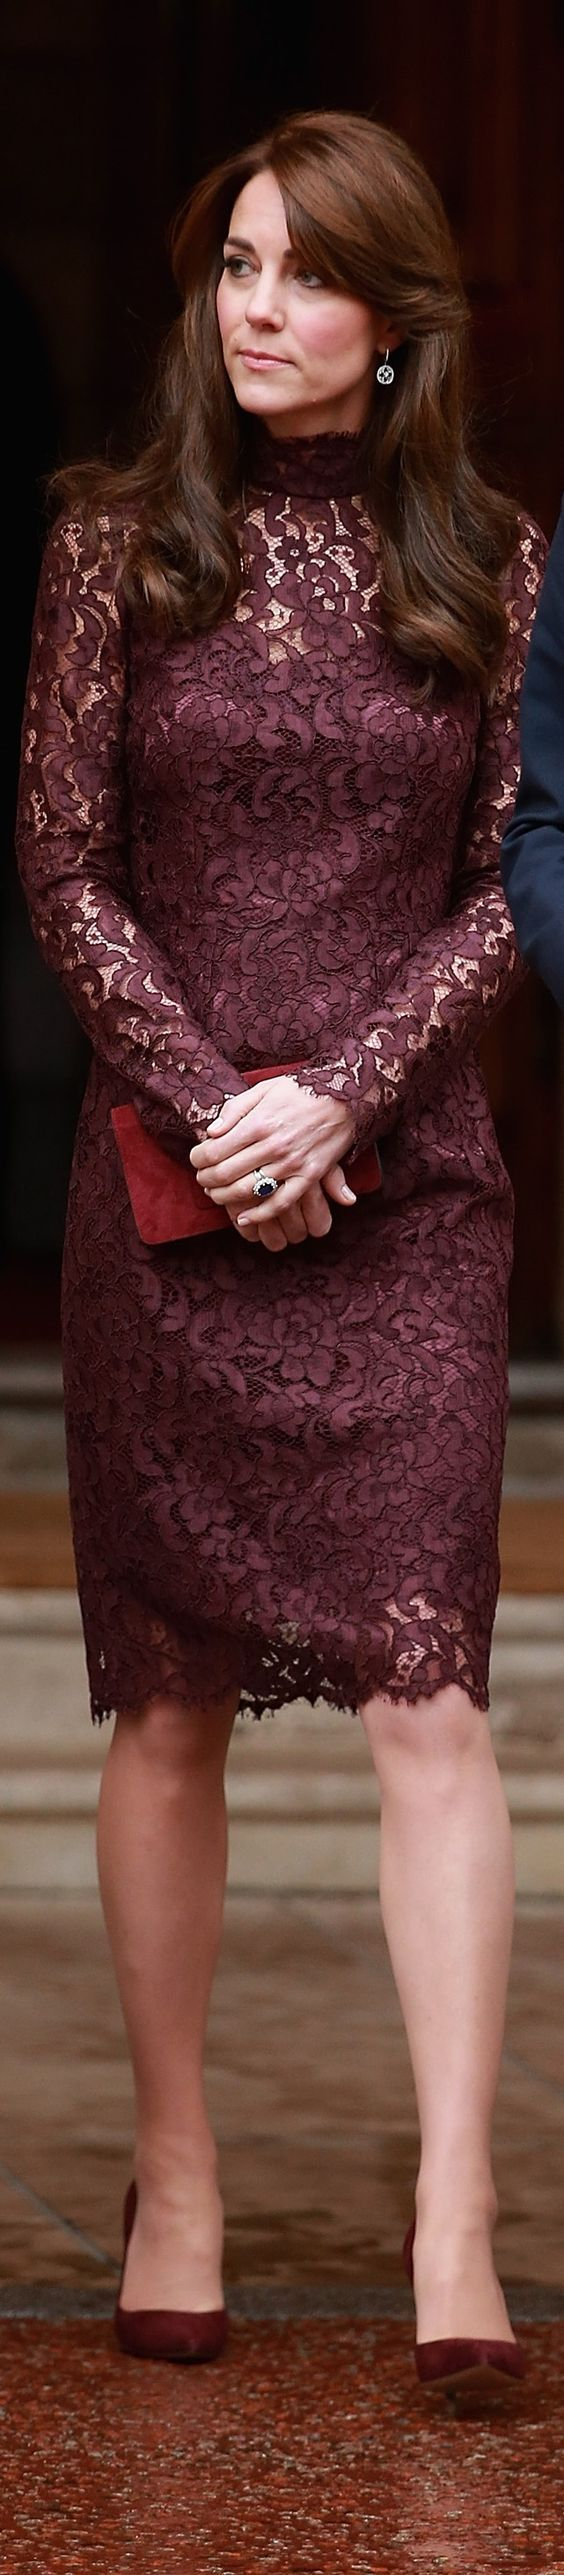 Kate Middleton In Dolce & Gabbana – President of the Peoples Republic of China State Visit: